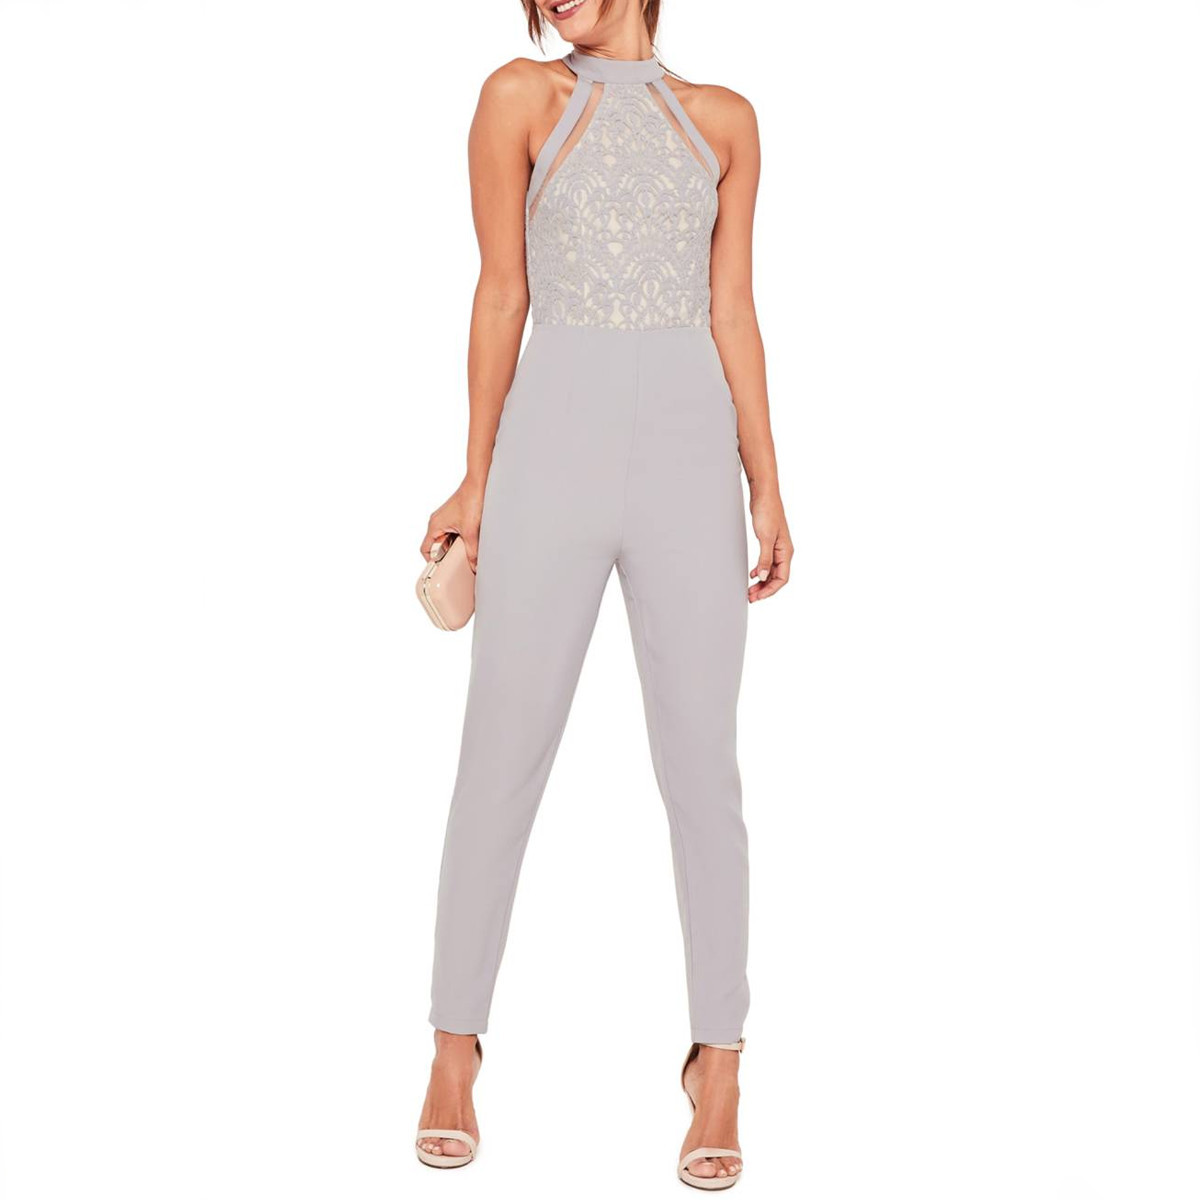 Woman in a silver sleeveless jumpsuit photo